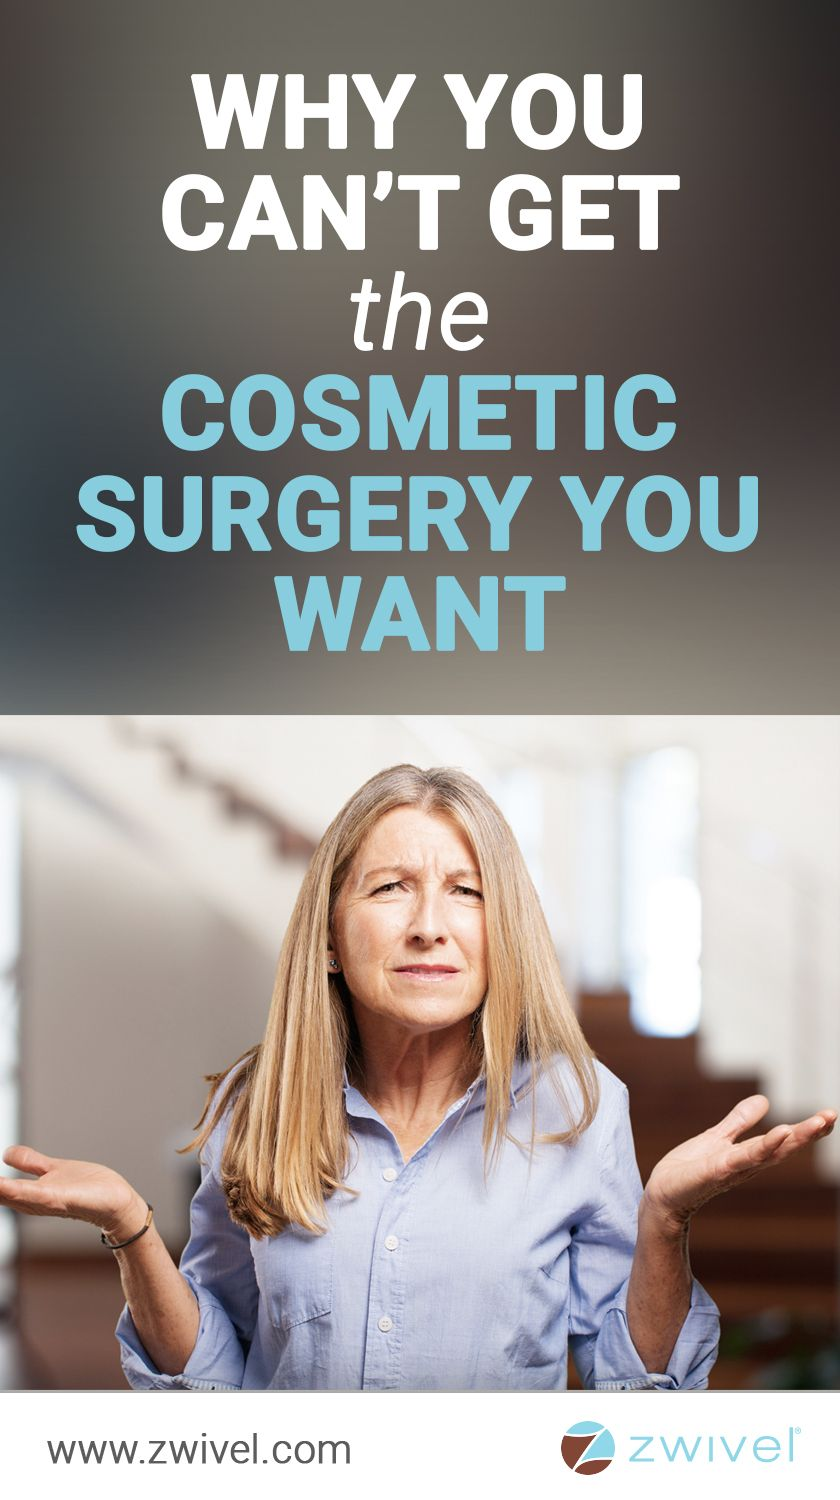 Why You Can't Get the Cosmetic Surgery You Want c240a13cc7a411e879d72075370327e1